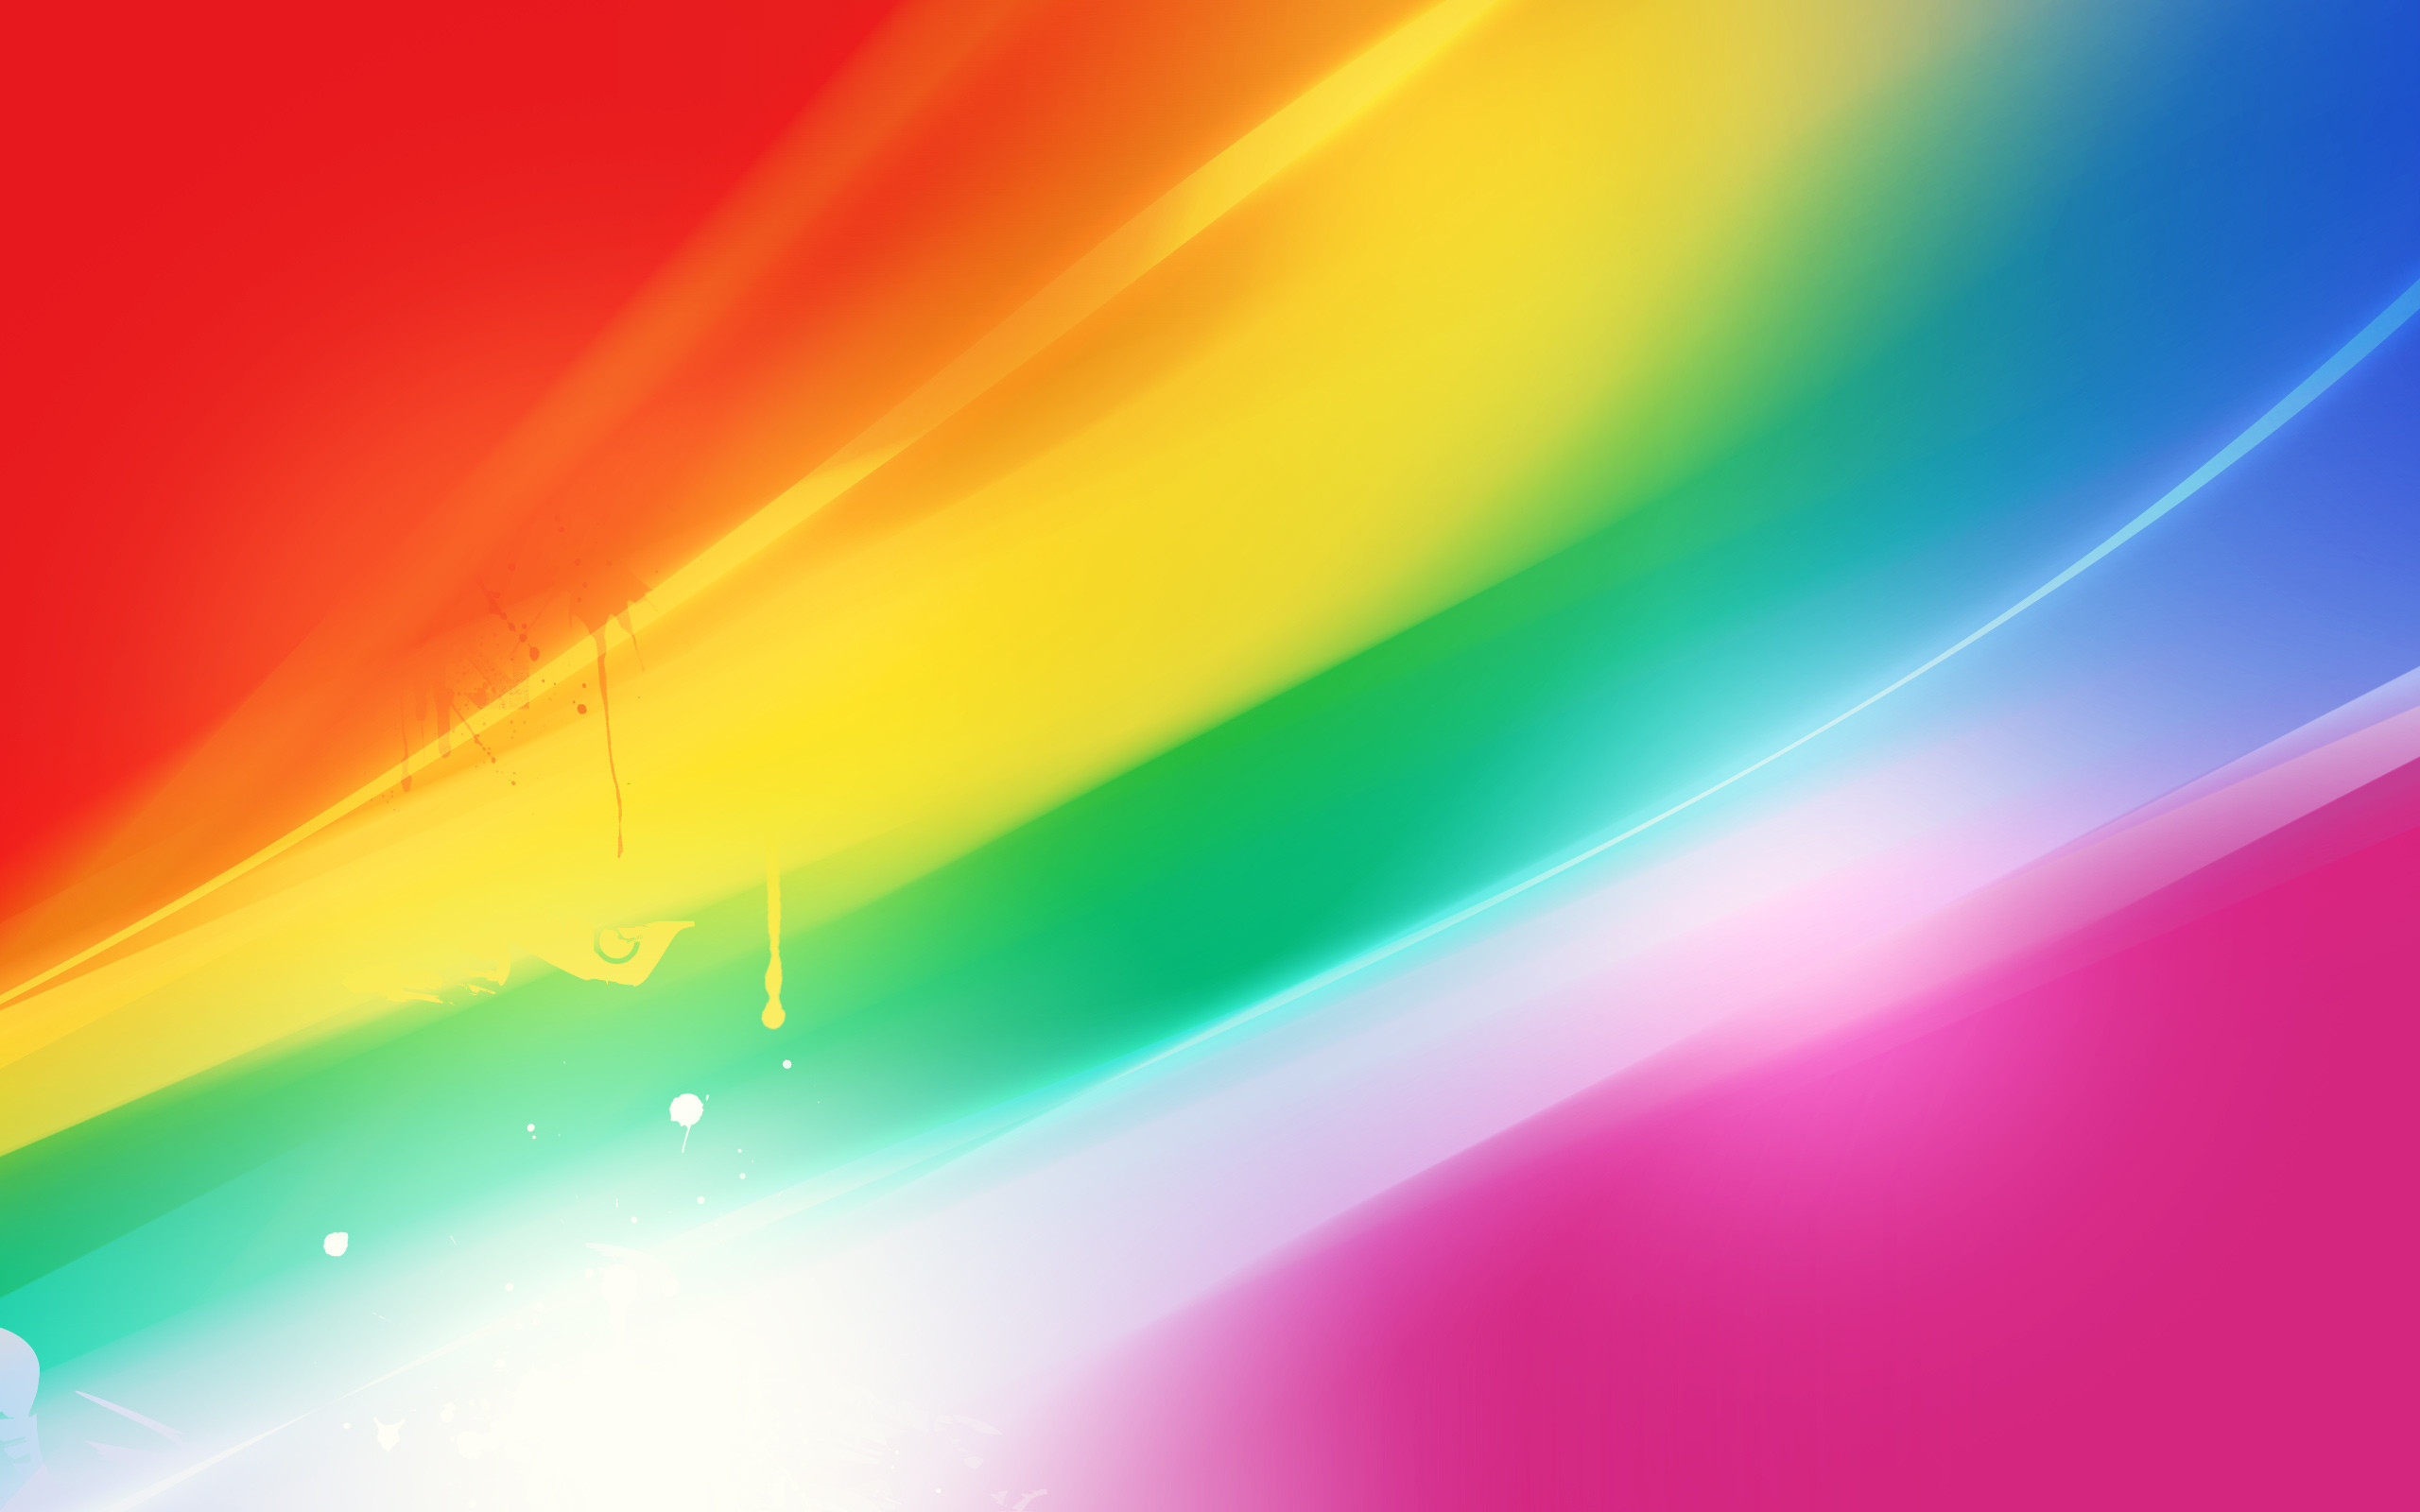 Colorful Backgrounds Wallpapers 2560x1600